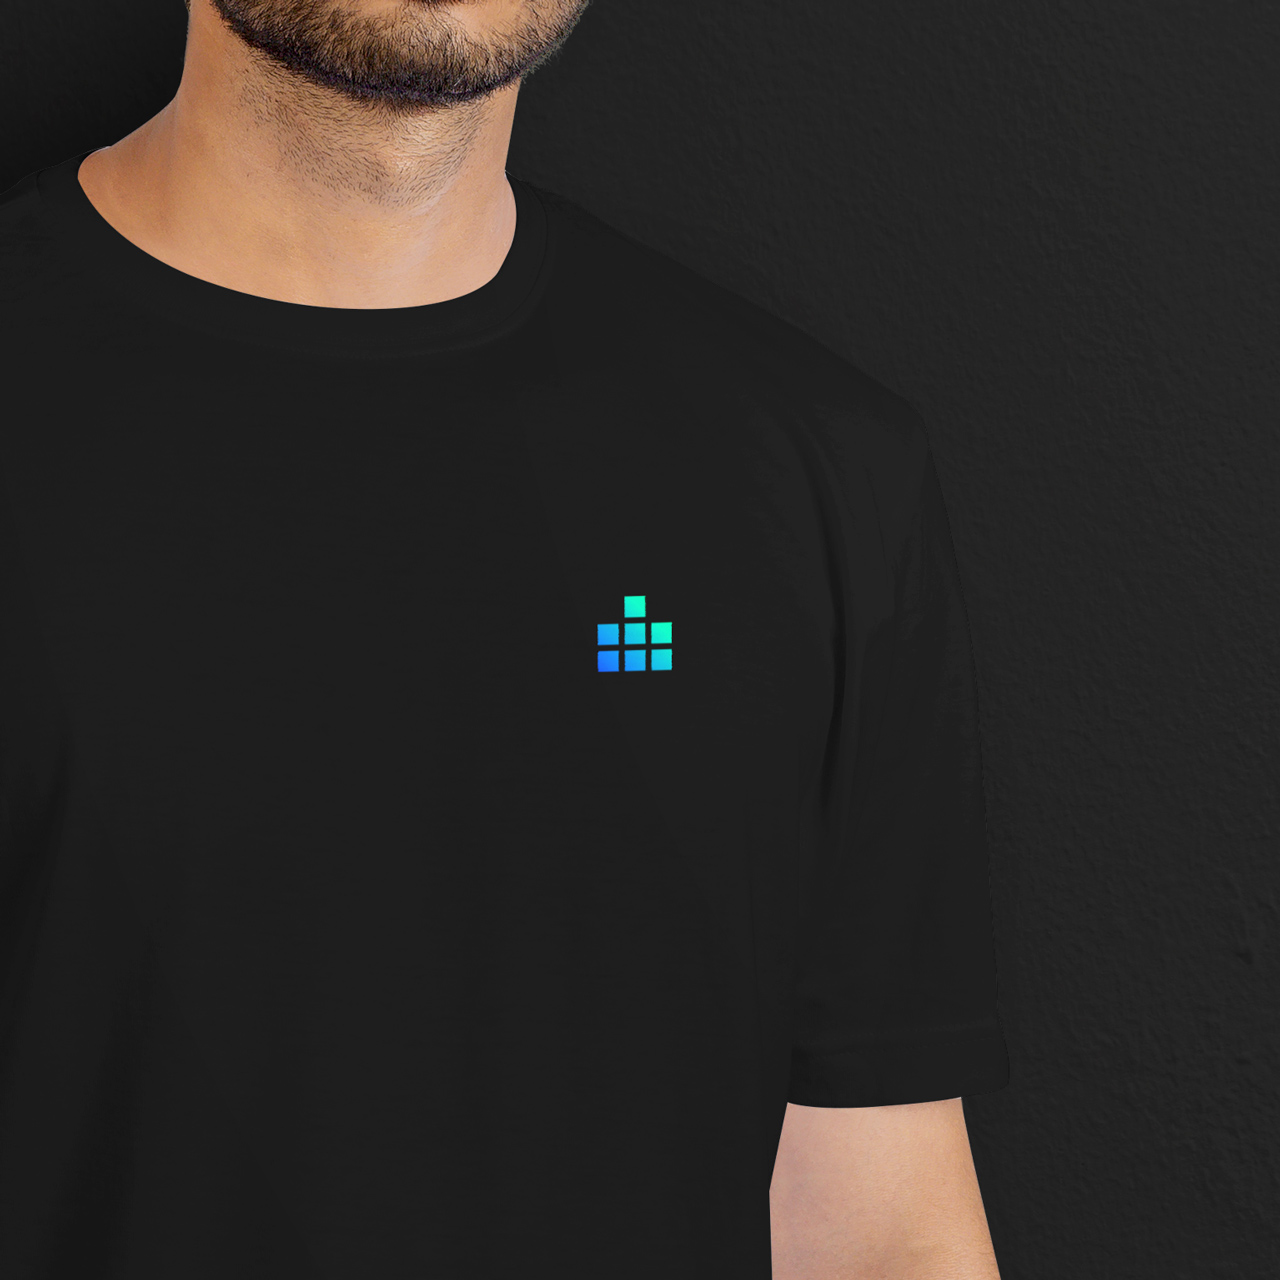 Digital Estate merchandising: black t-shirt with pocket logo by SPX